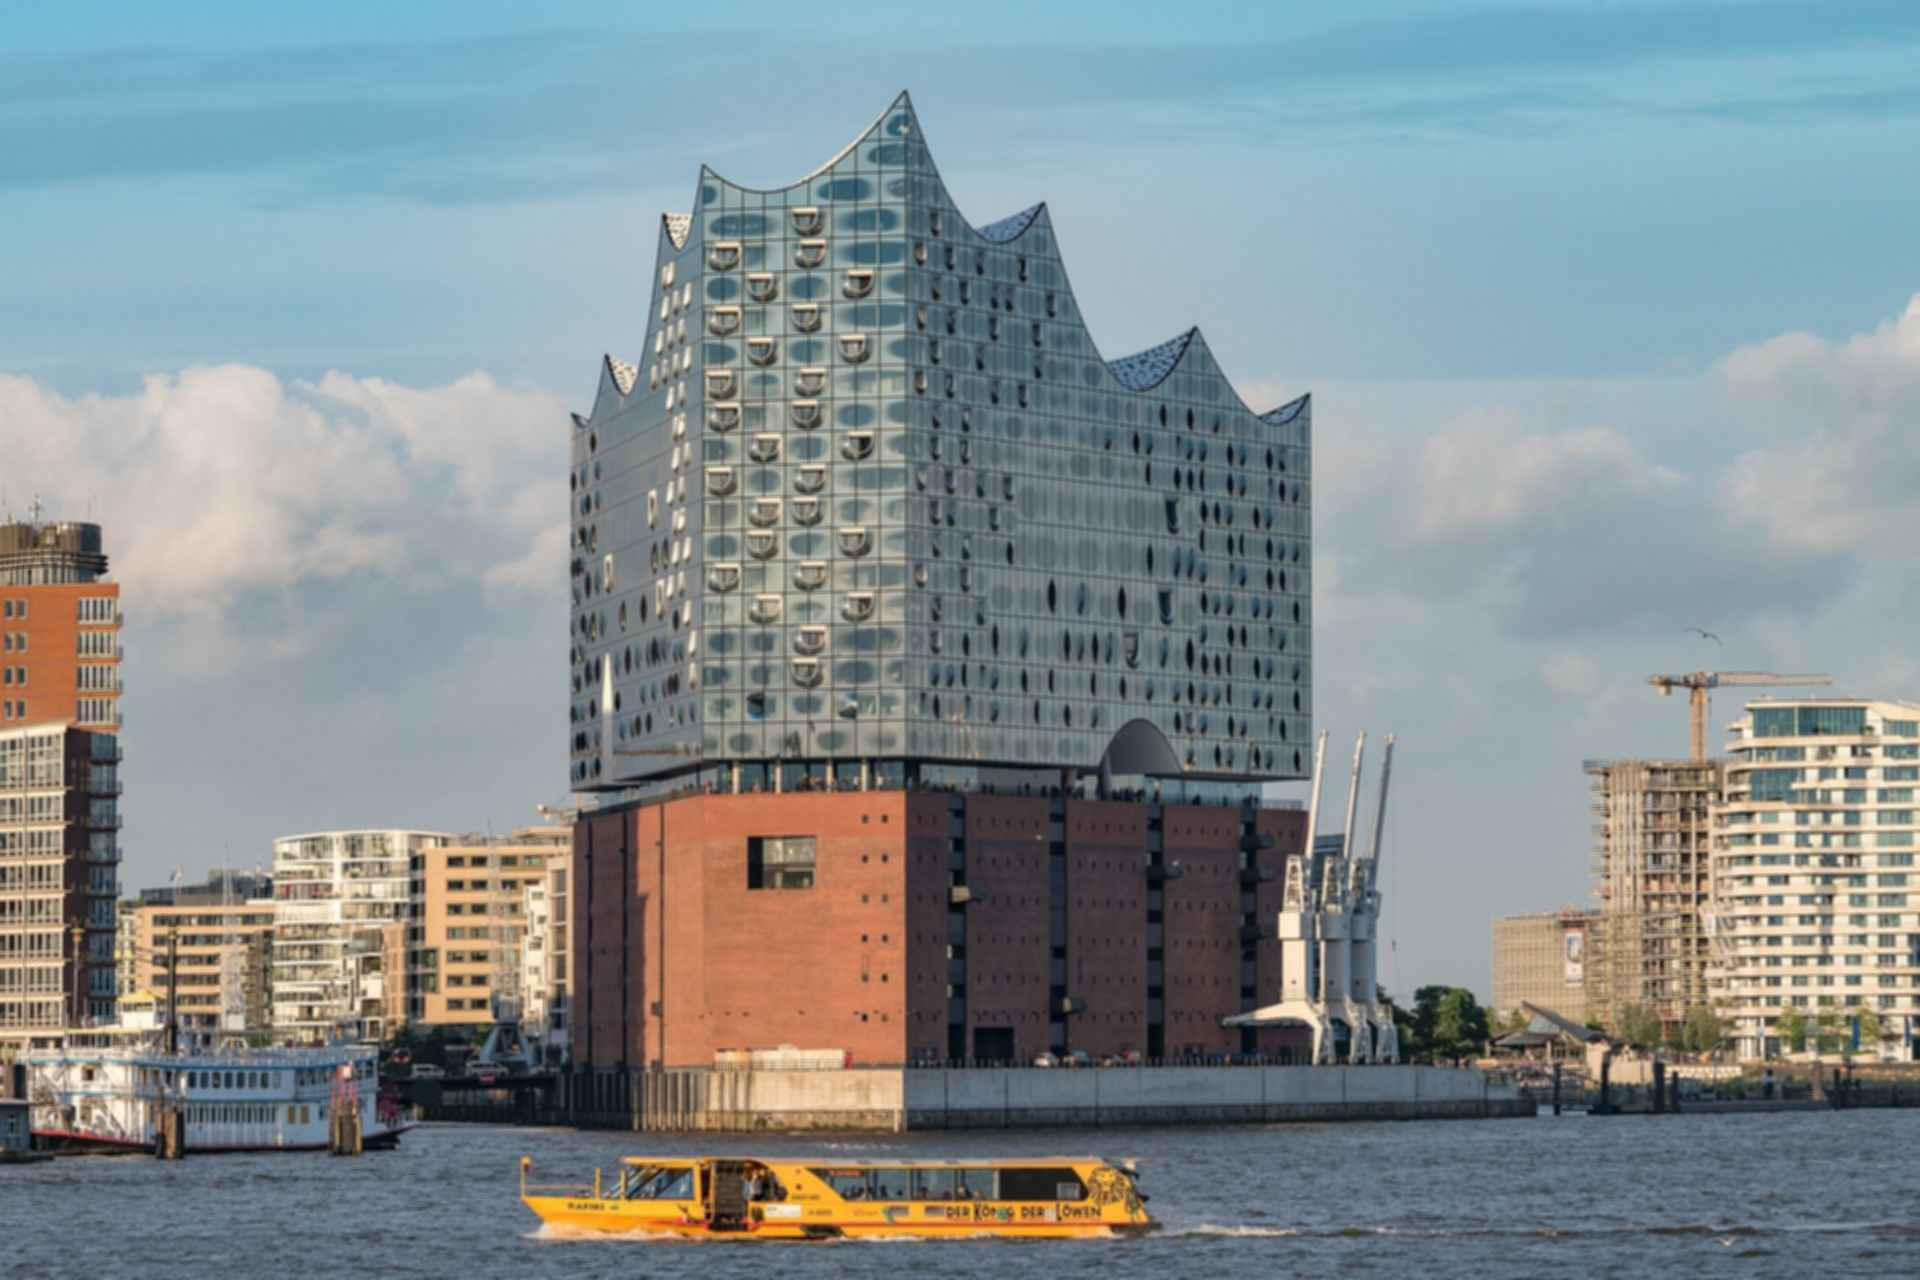 Elbphilharmonie - View from River